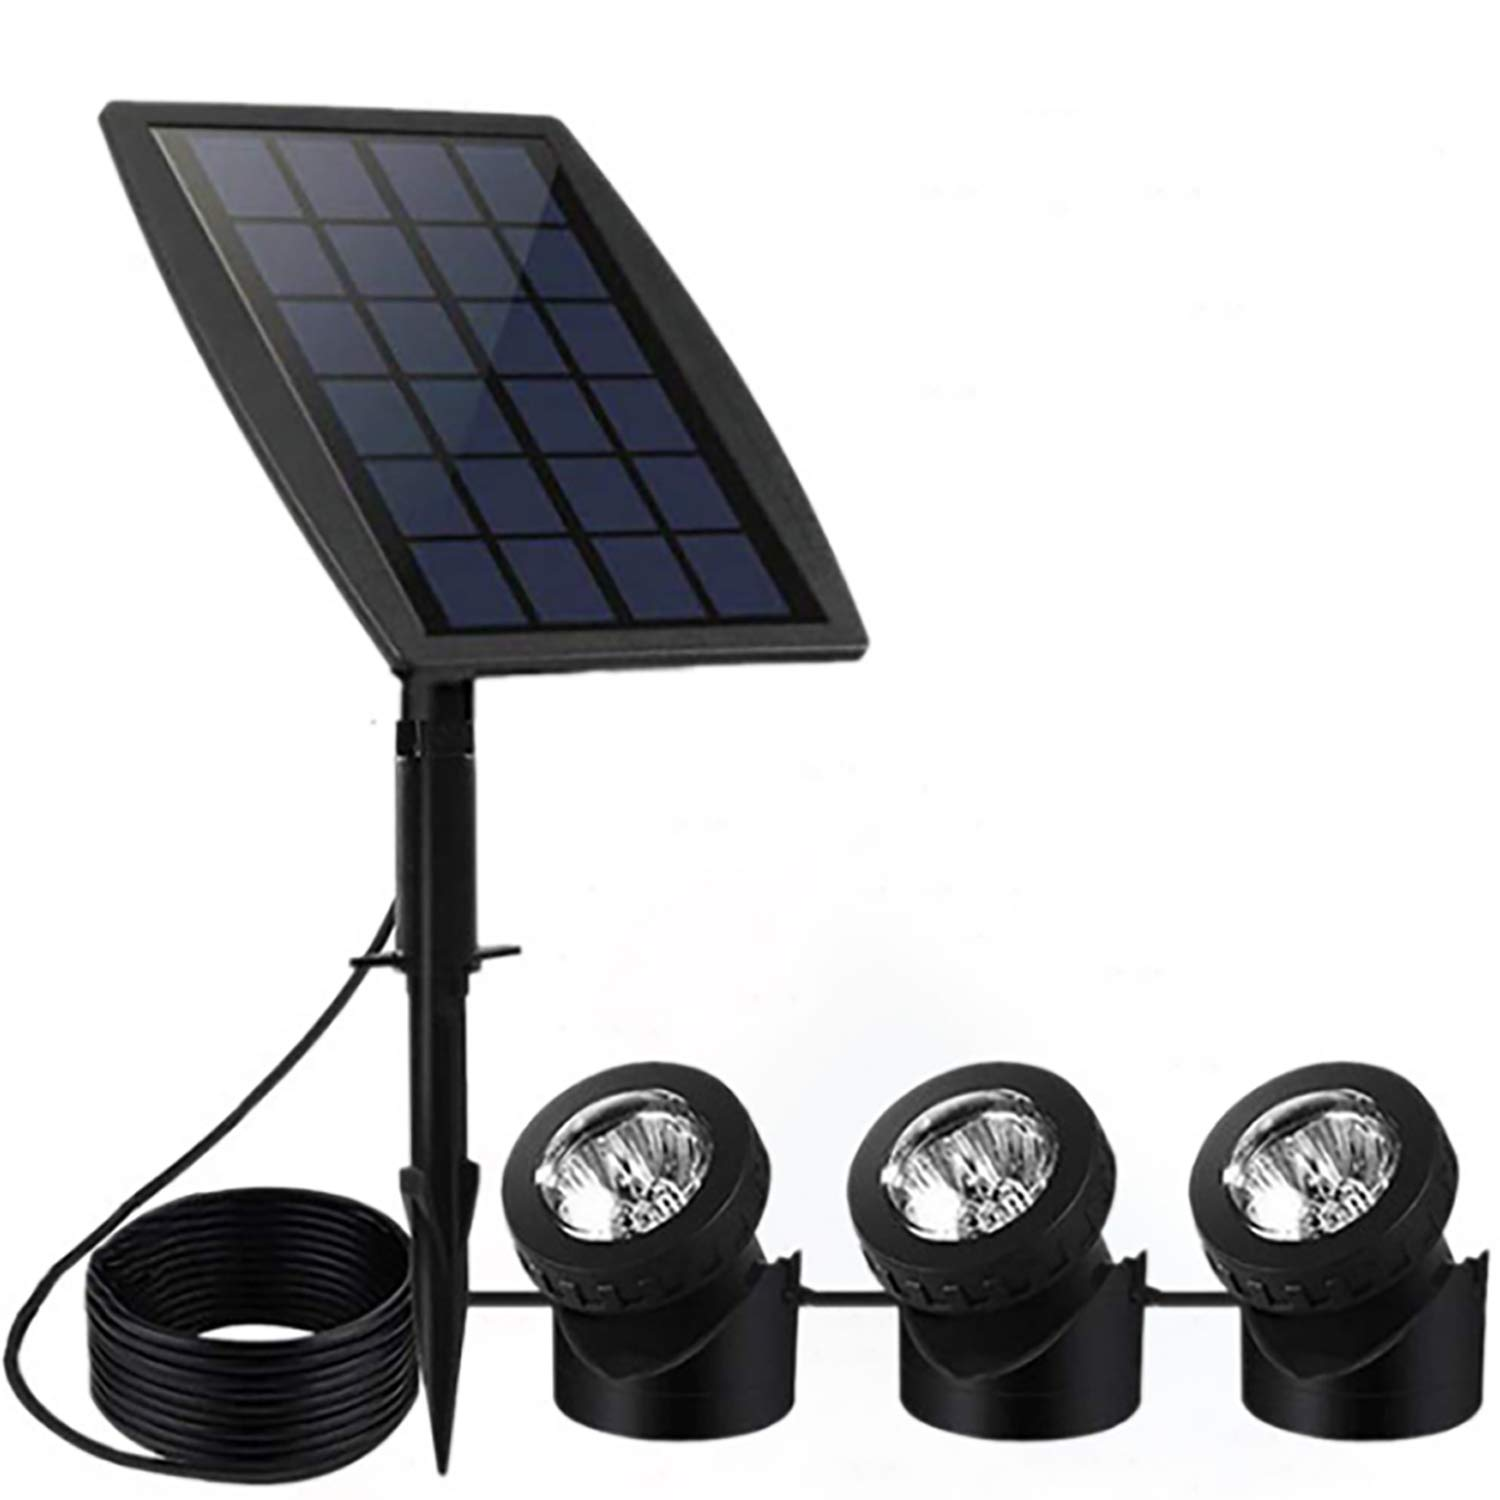 Feifeier Weather Proof Solar Powered Pure White Color Led Lights